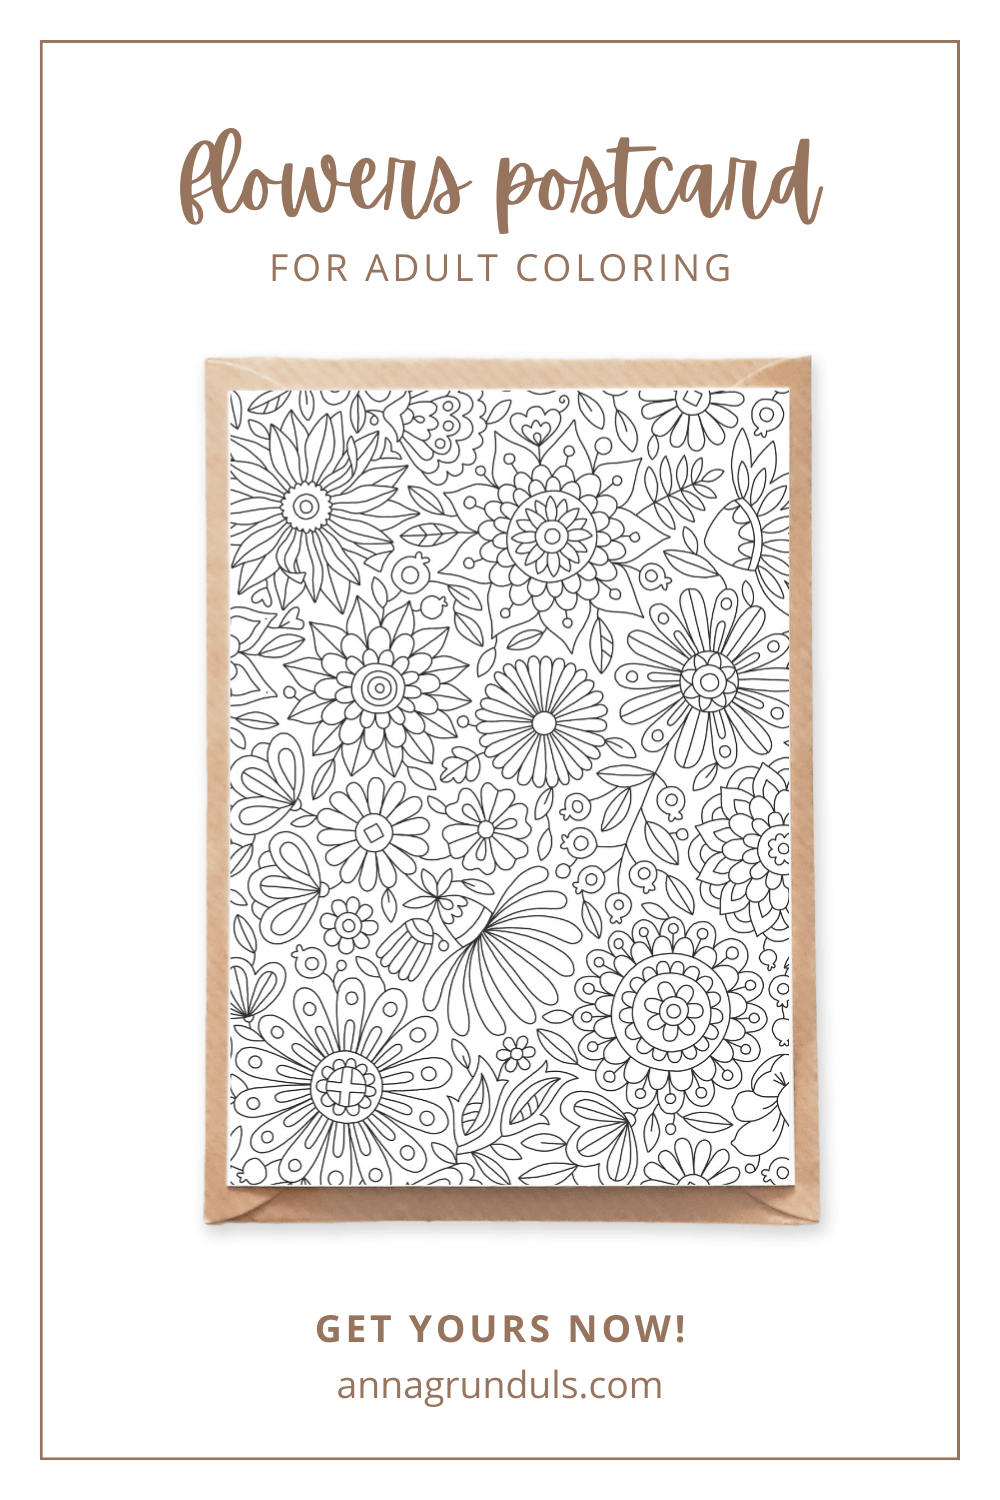 flowers pattern postcard for adult coloring pinterest pin